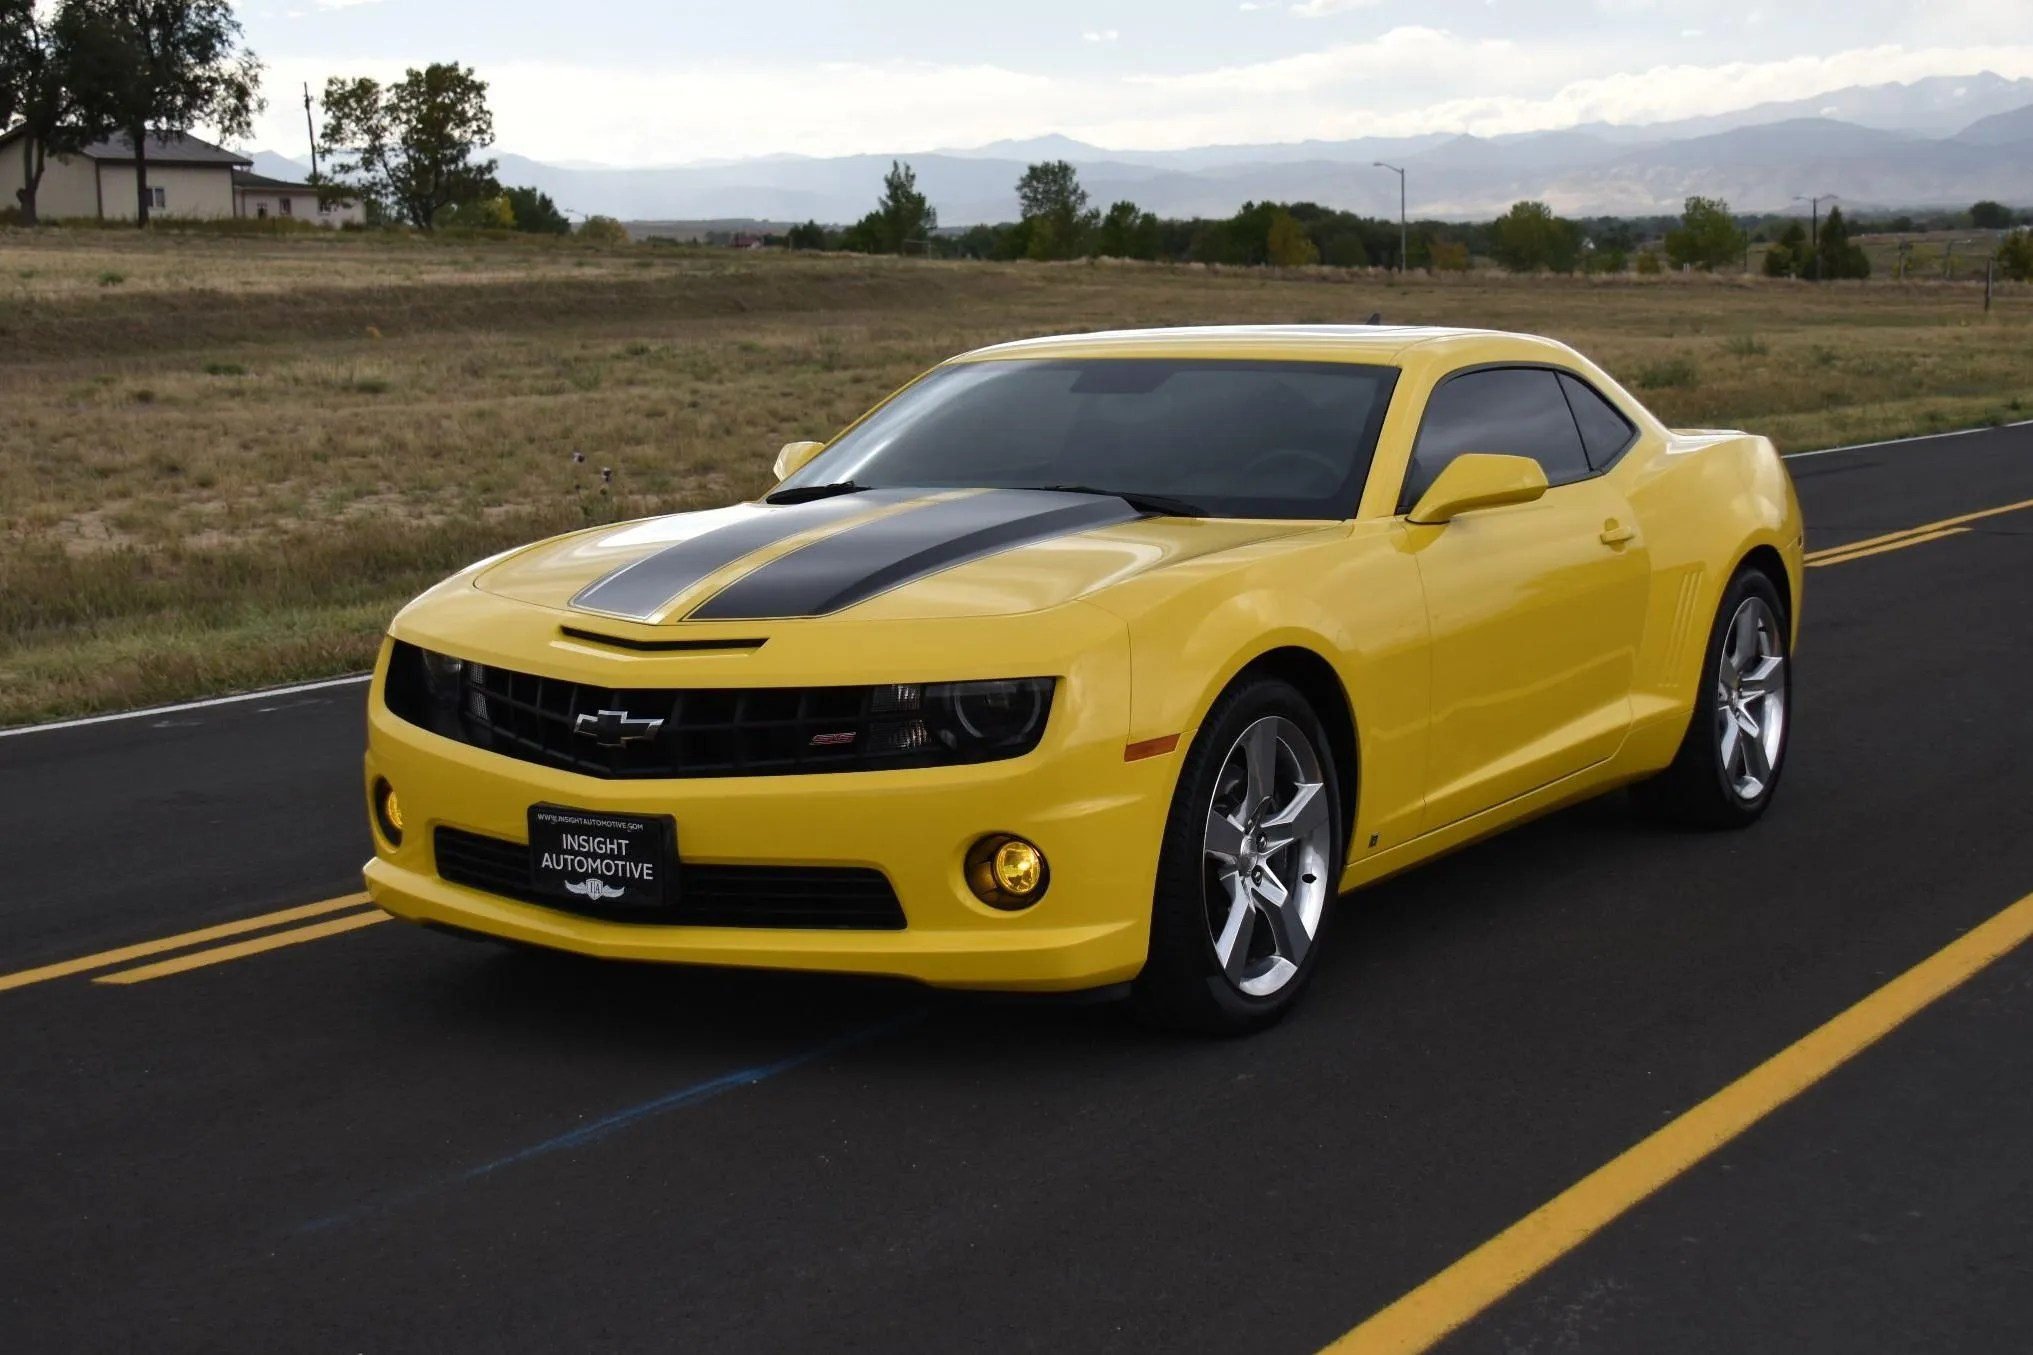 medium resolution of 2010 chevrolet camaro 2ss rs v8 426 hp 6 speed manual low low miles heated leather roof